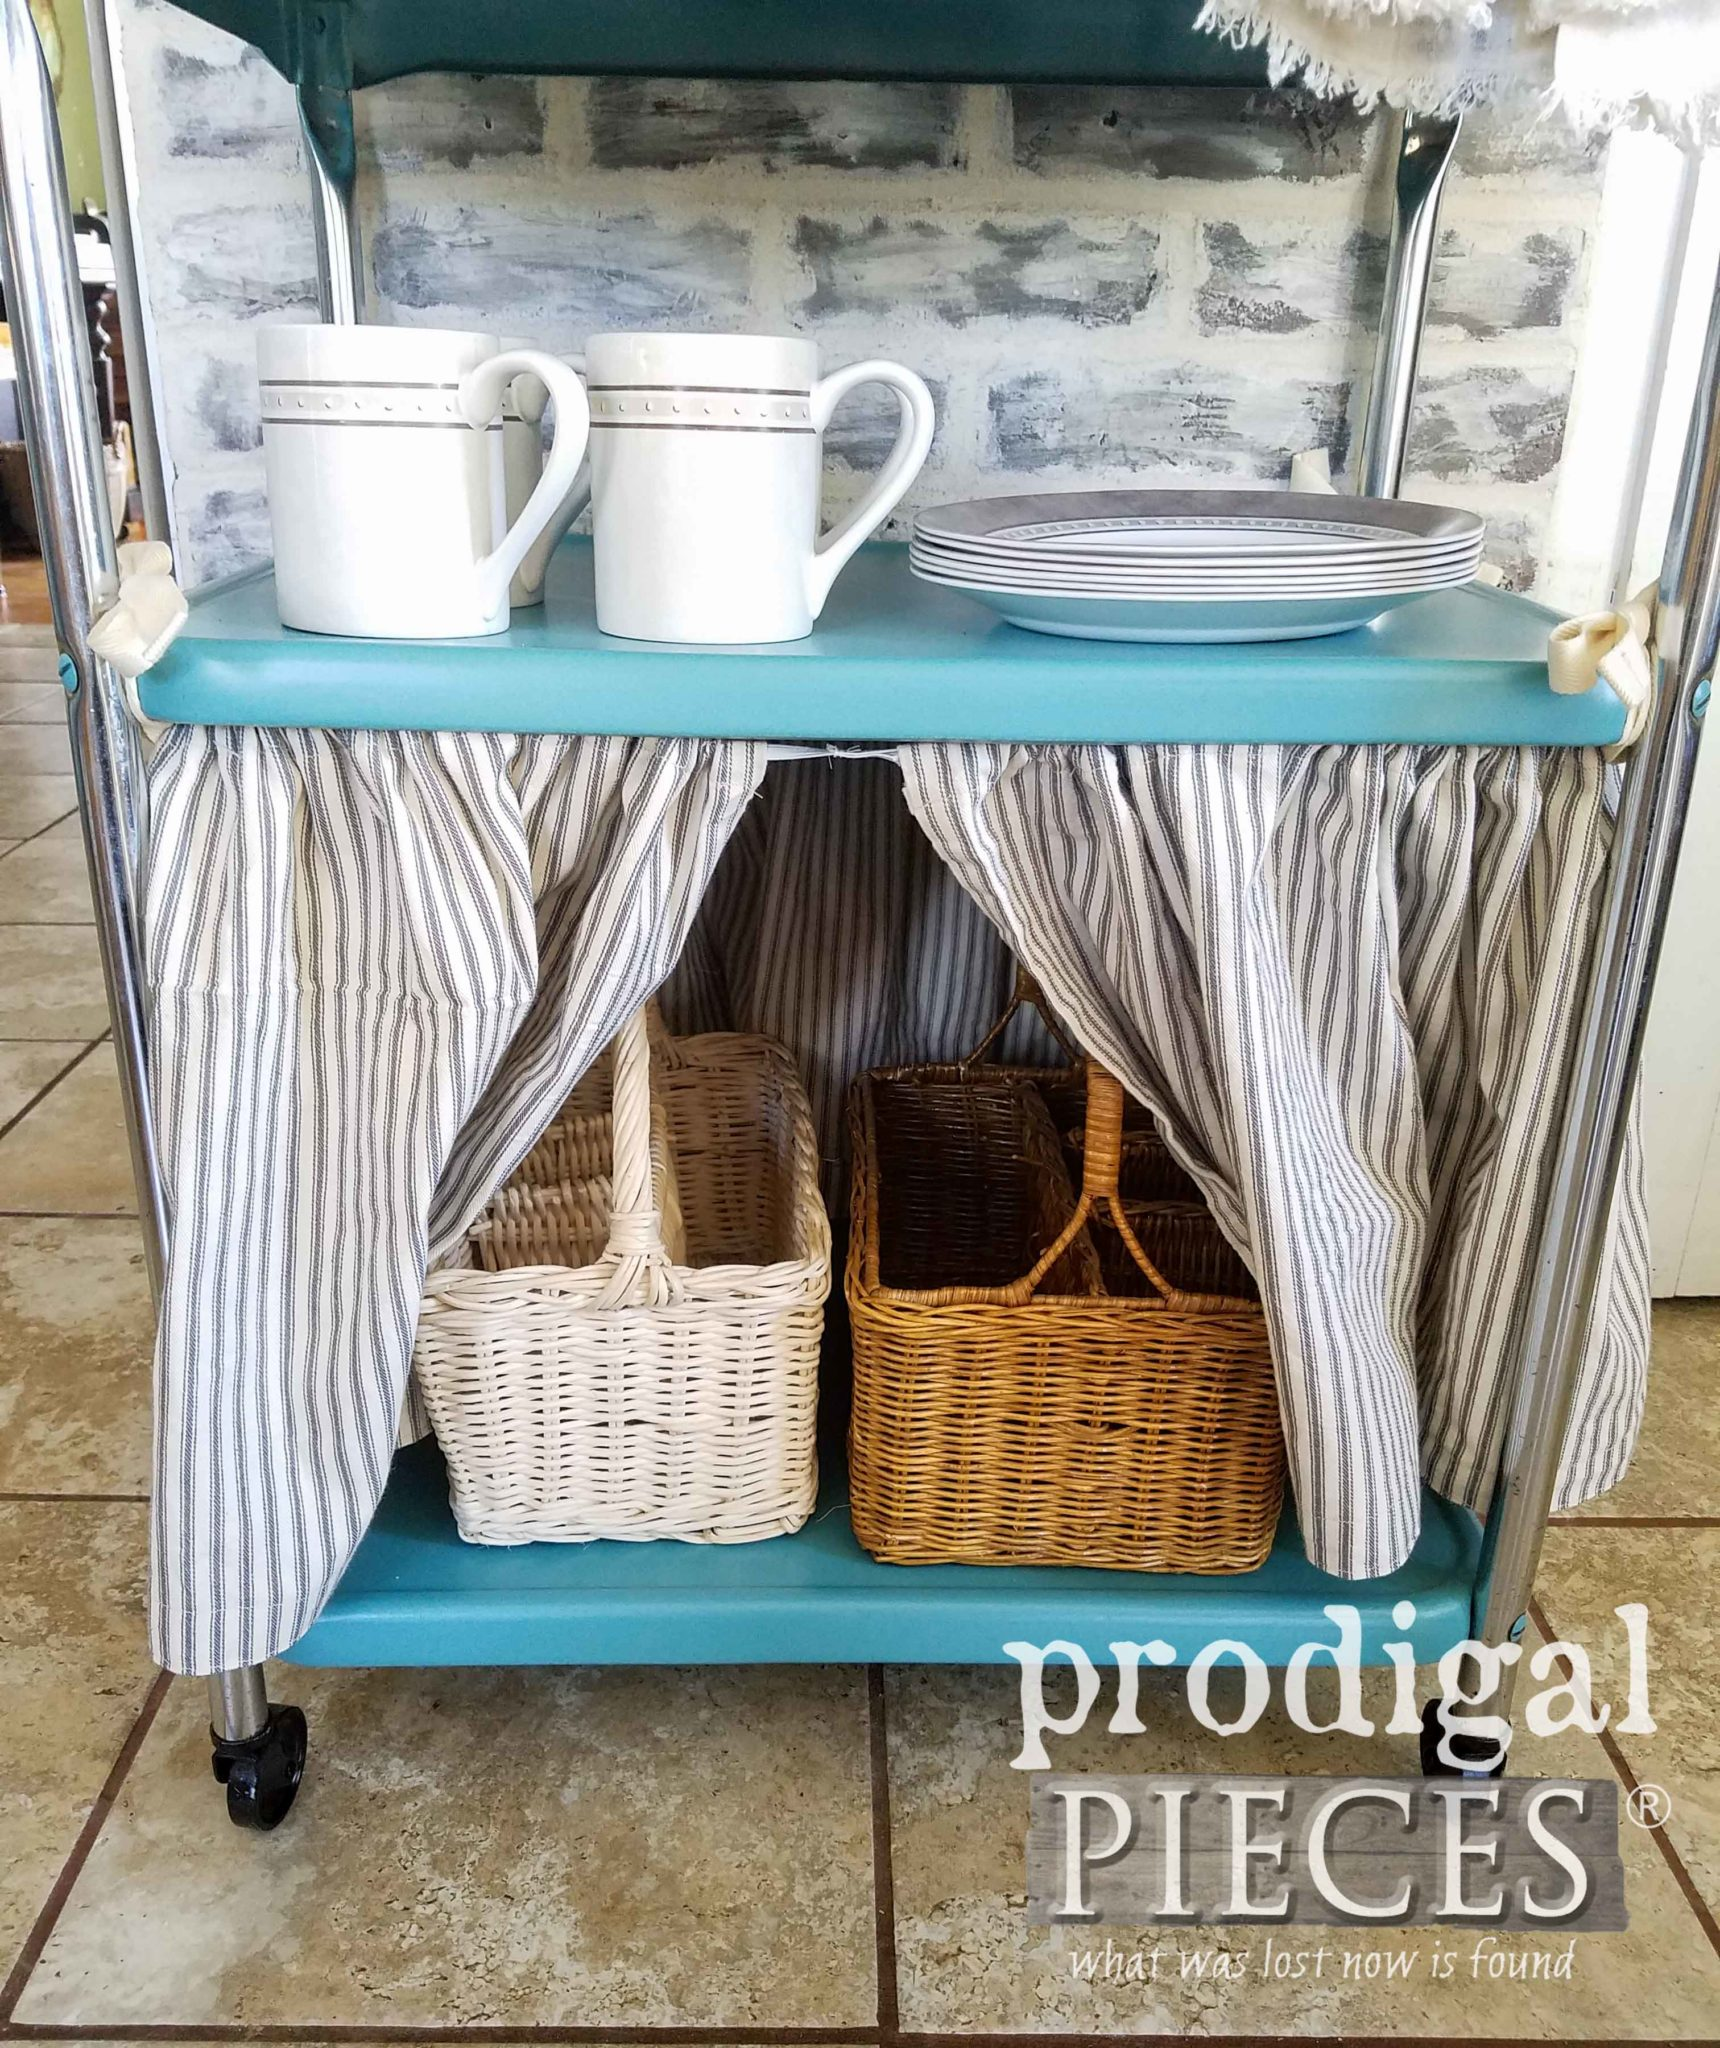 Cottage Farmhouse Style Serving Cart with Dust Ruffle and Baskets for Extra Storage by Larissa of Prodigal Pieces | prodigalpieces.com